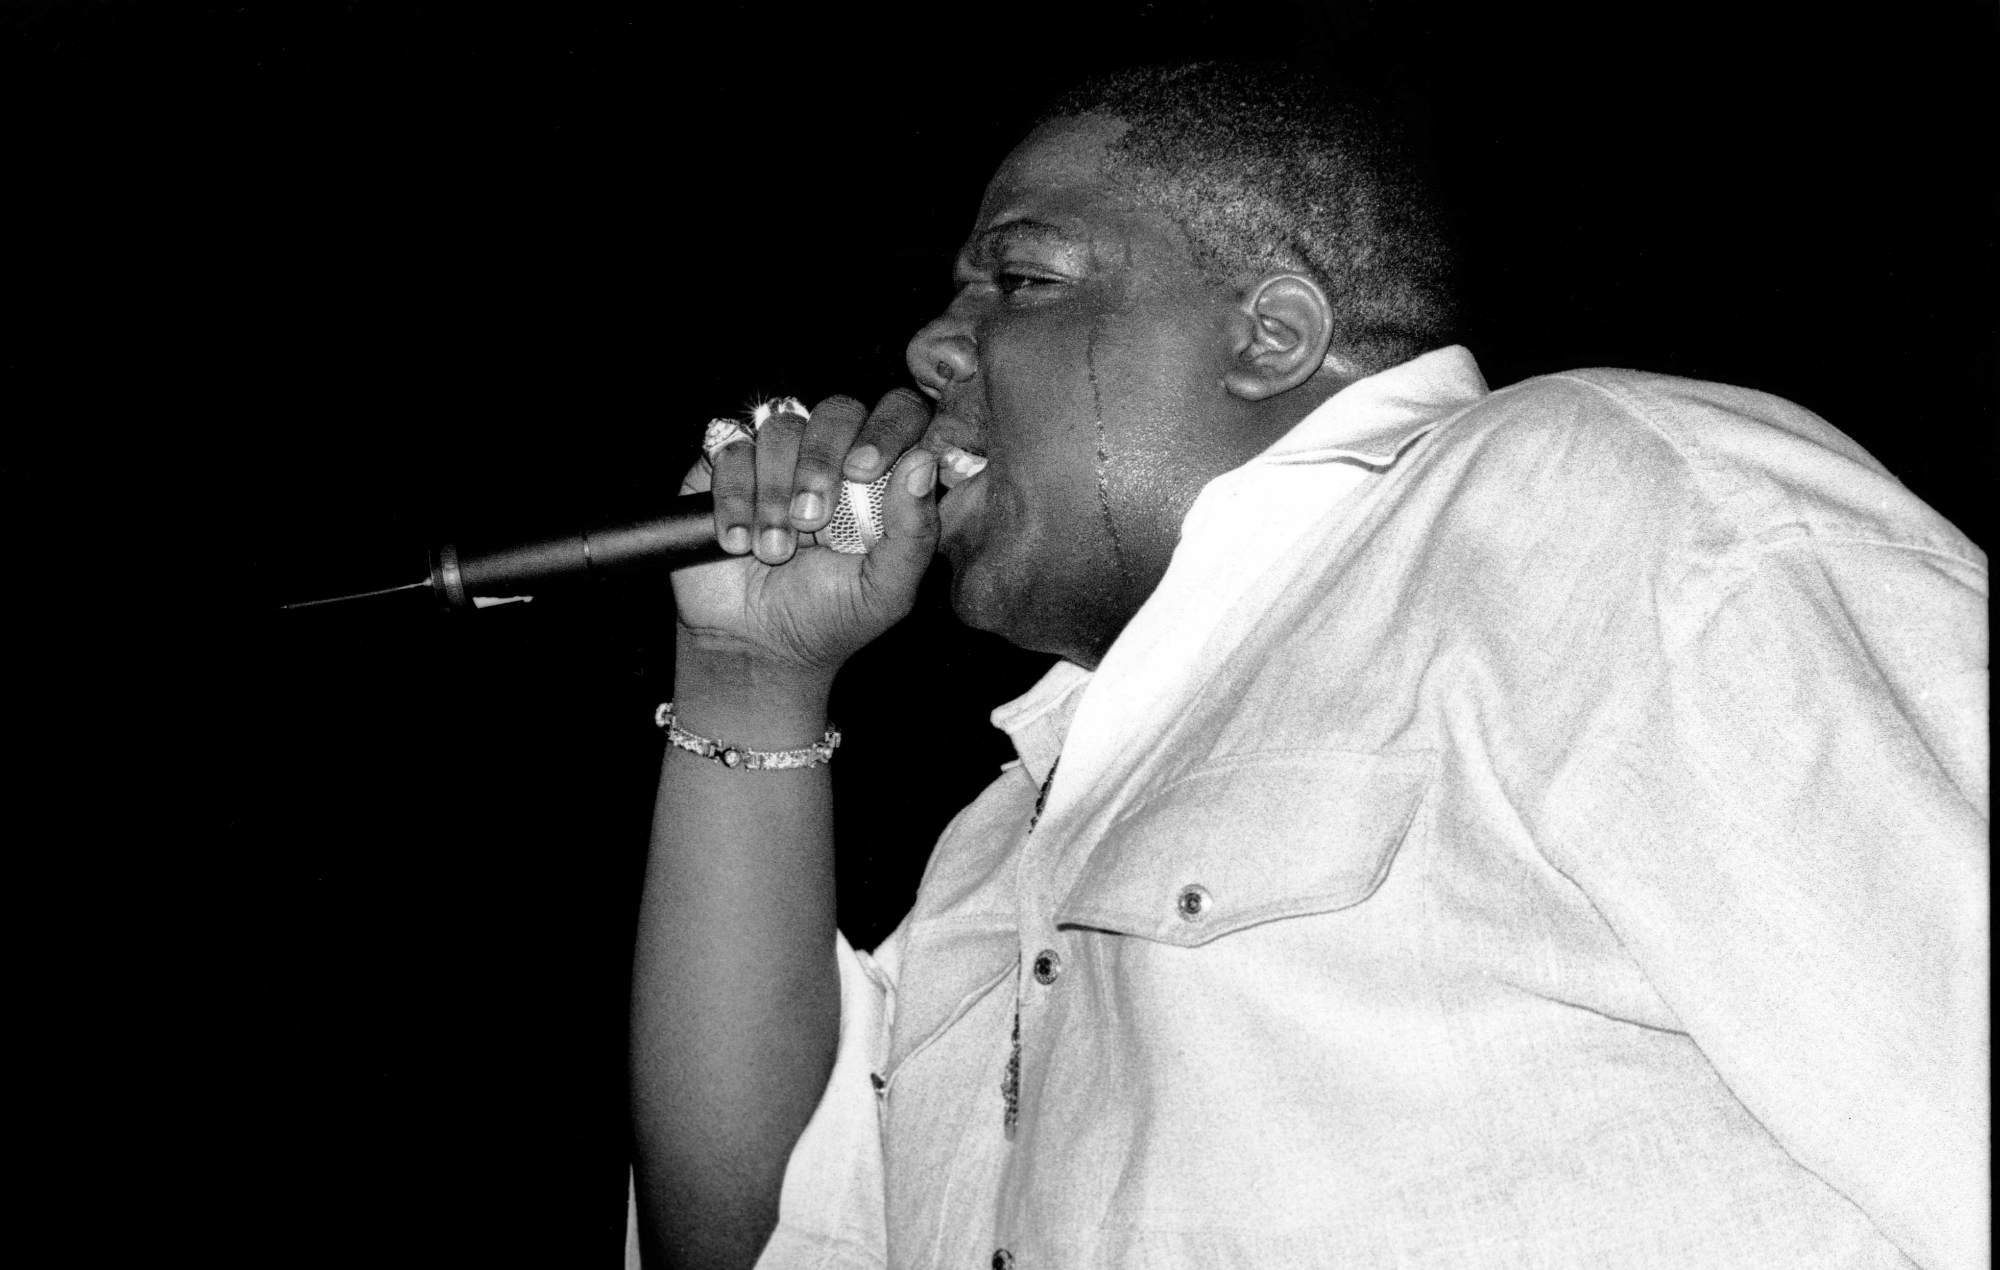 The Notorious B.I.G.'s 'Juicy' tops new poll of greatest hip-hop tracks ever